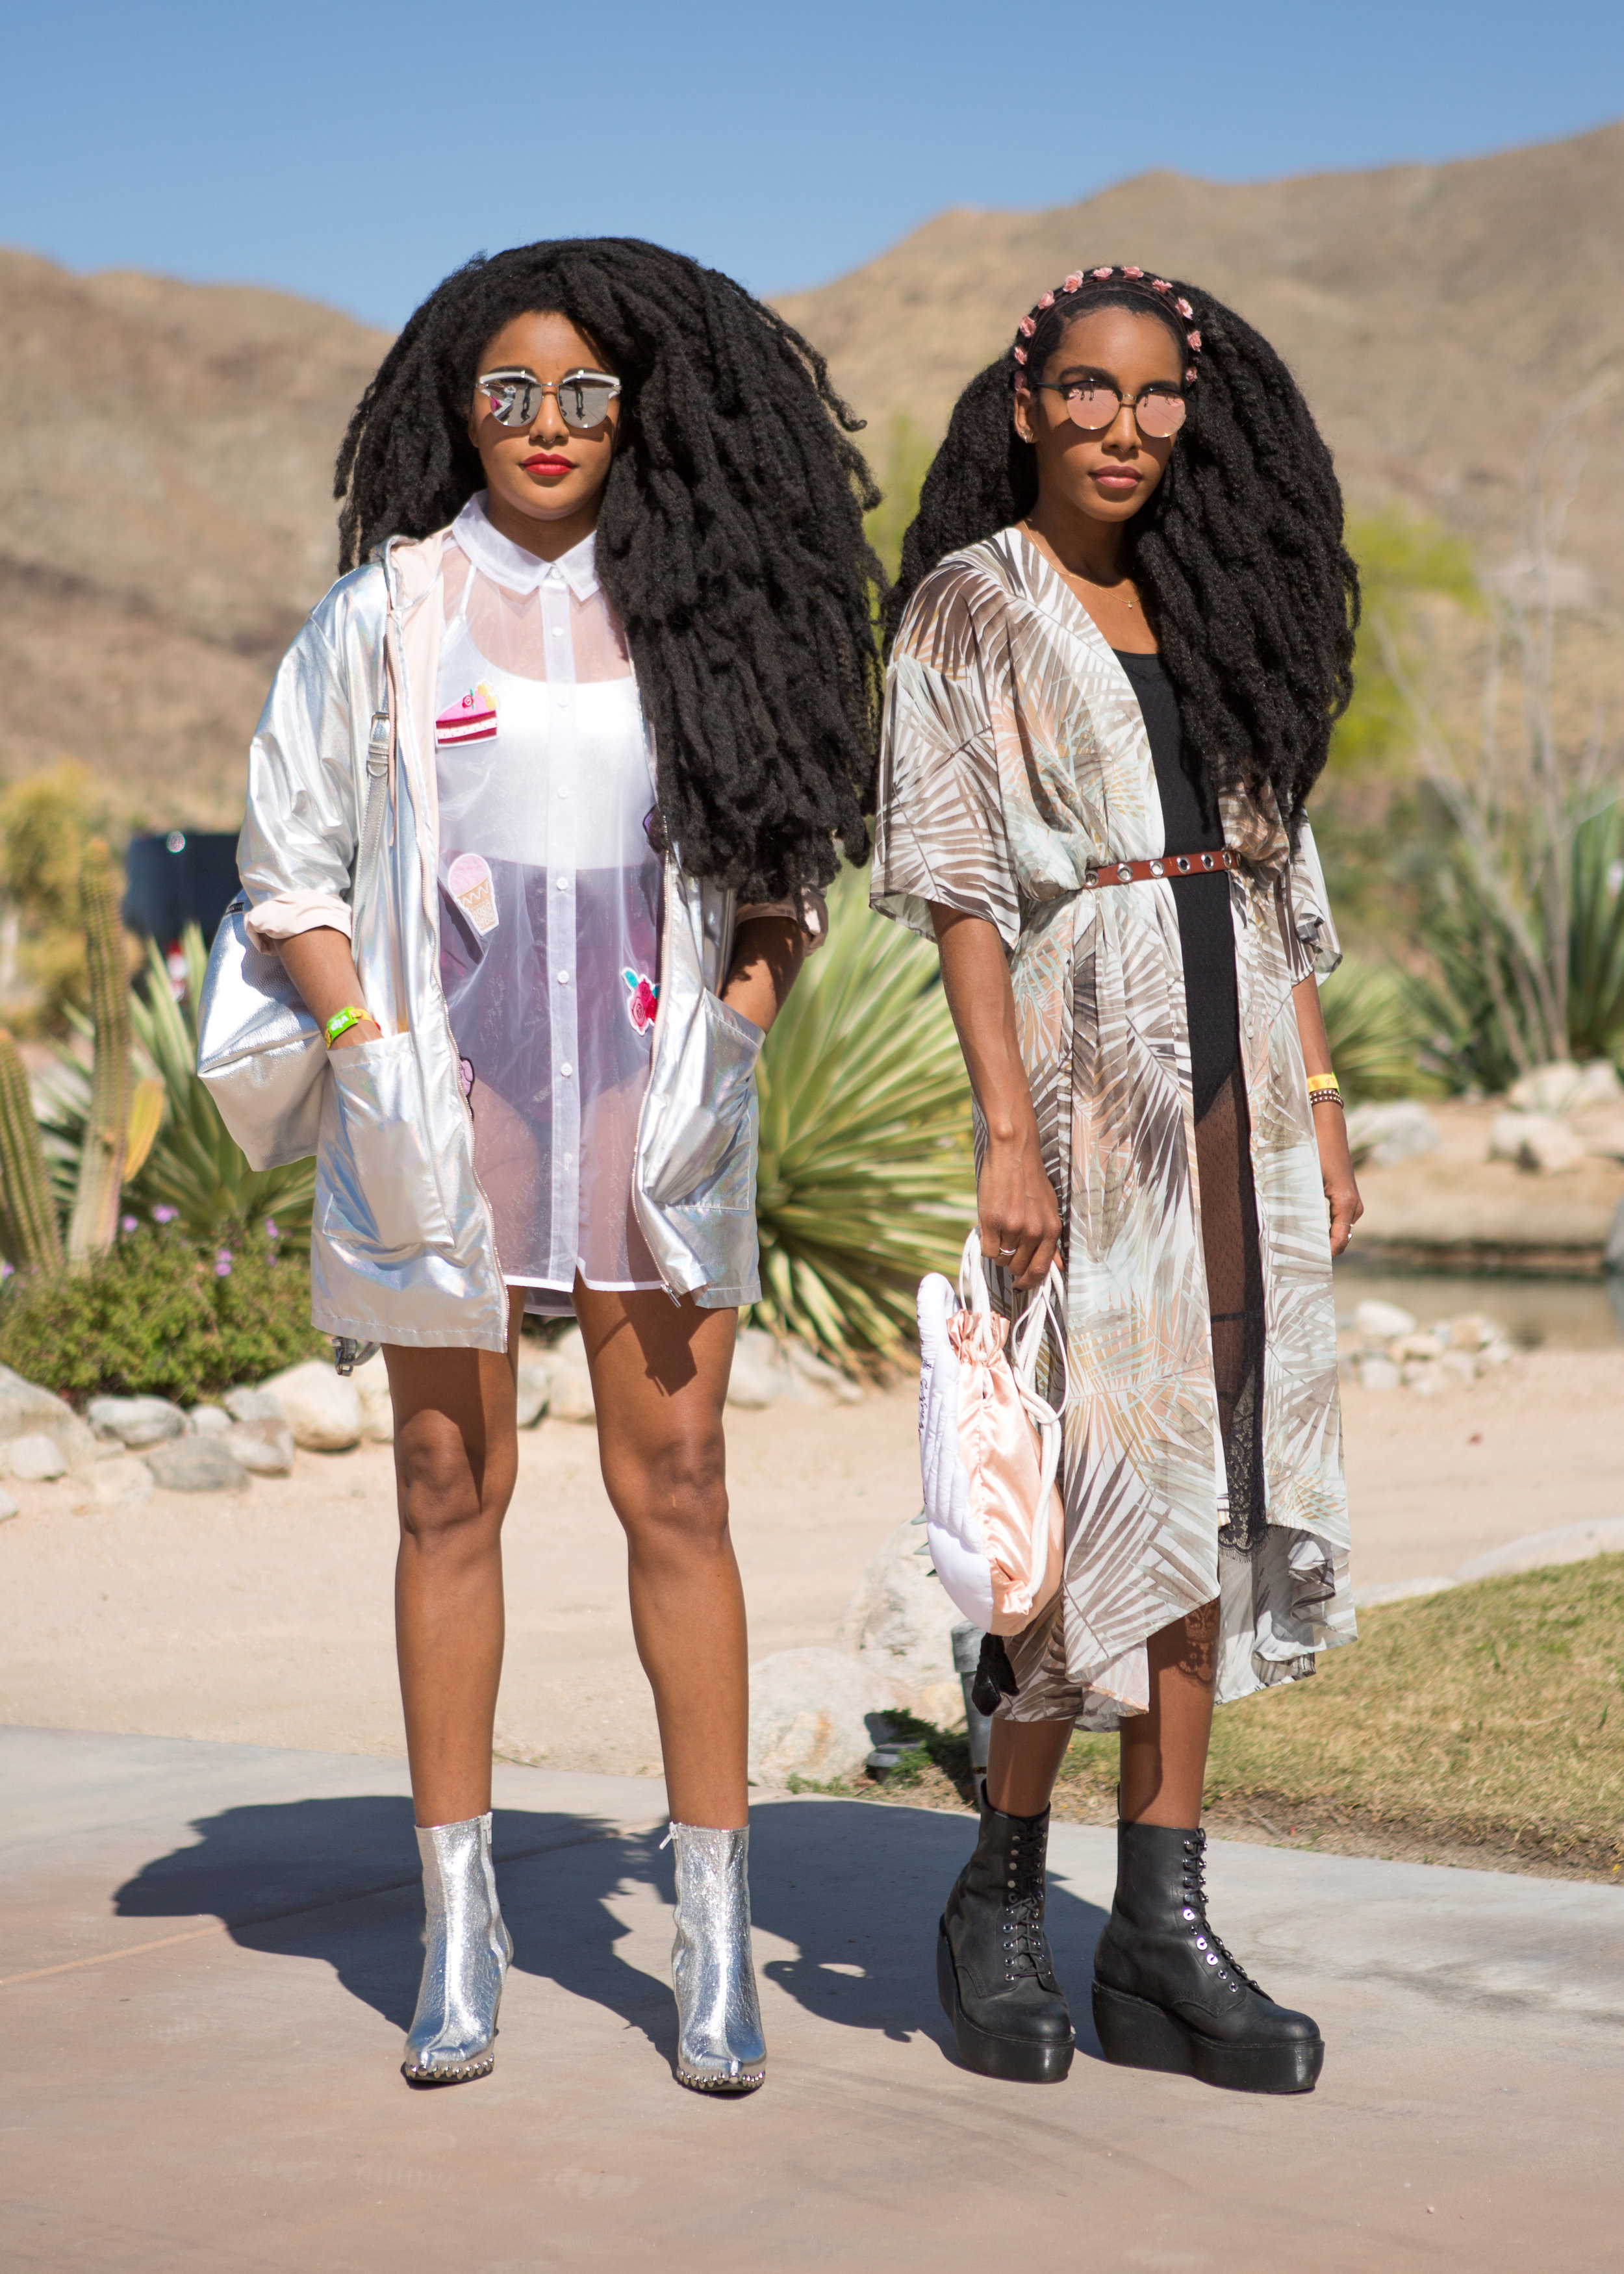 Ultimate Hollywood Coachella Poolside Party cipriana quann tk quann.jpg